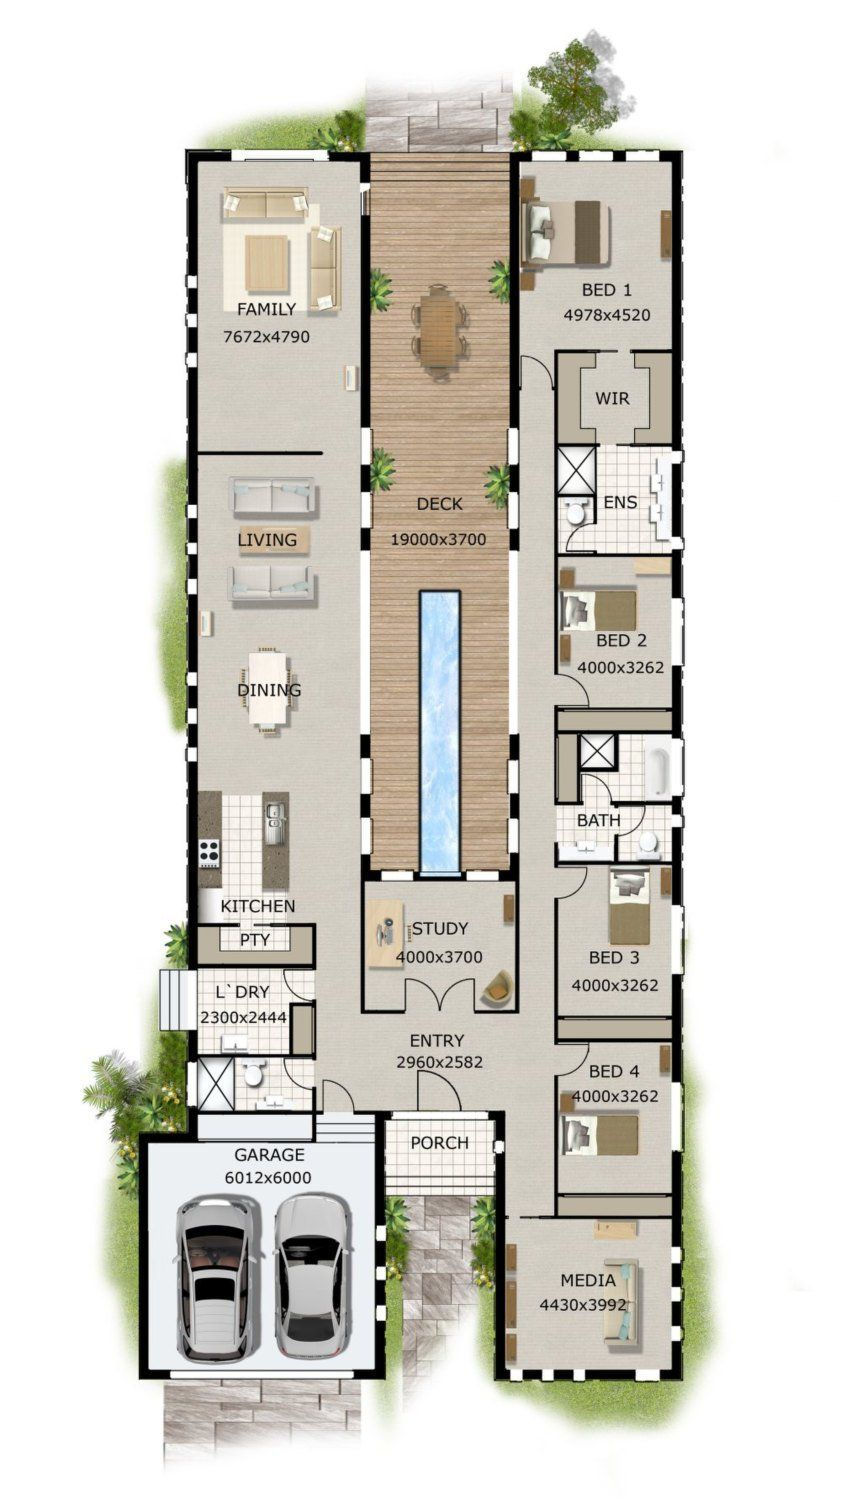 418m2 4503 Sq Foot 5 Bed Flat 4 Plus Study Home Design 5 Bed Home Home Plans Modern 5 Bedroom Home Plans Courtyard Home Shipping Container House Plans Container House Plans Building A Container Home